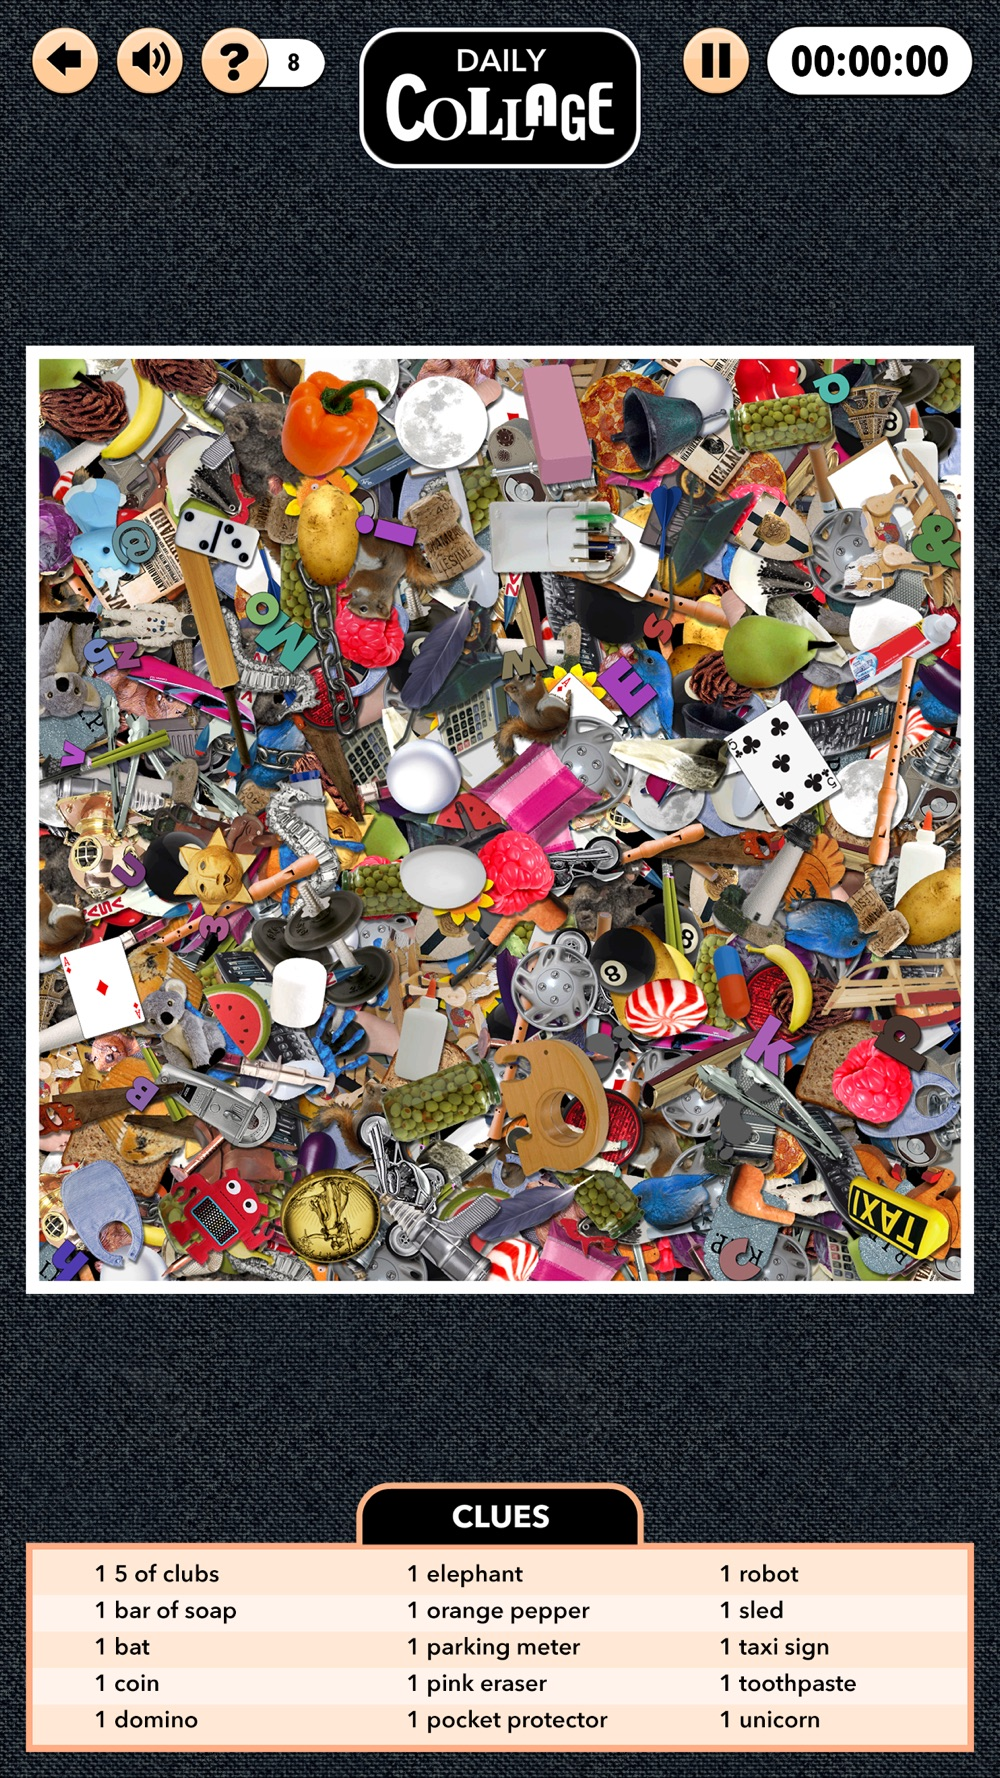 Daily Collage - A Hidden Object Game hack tool